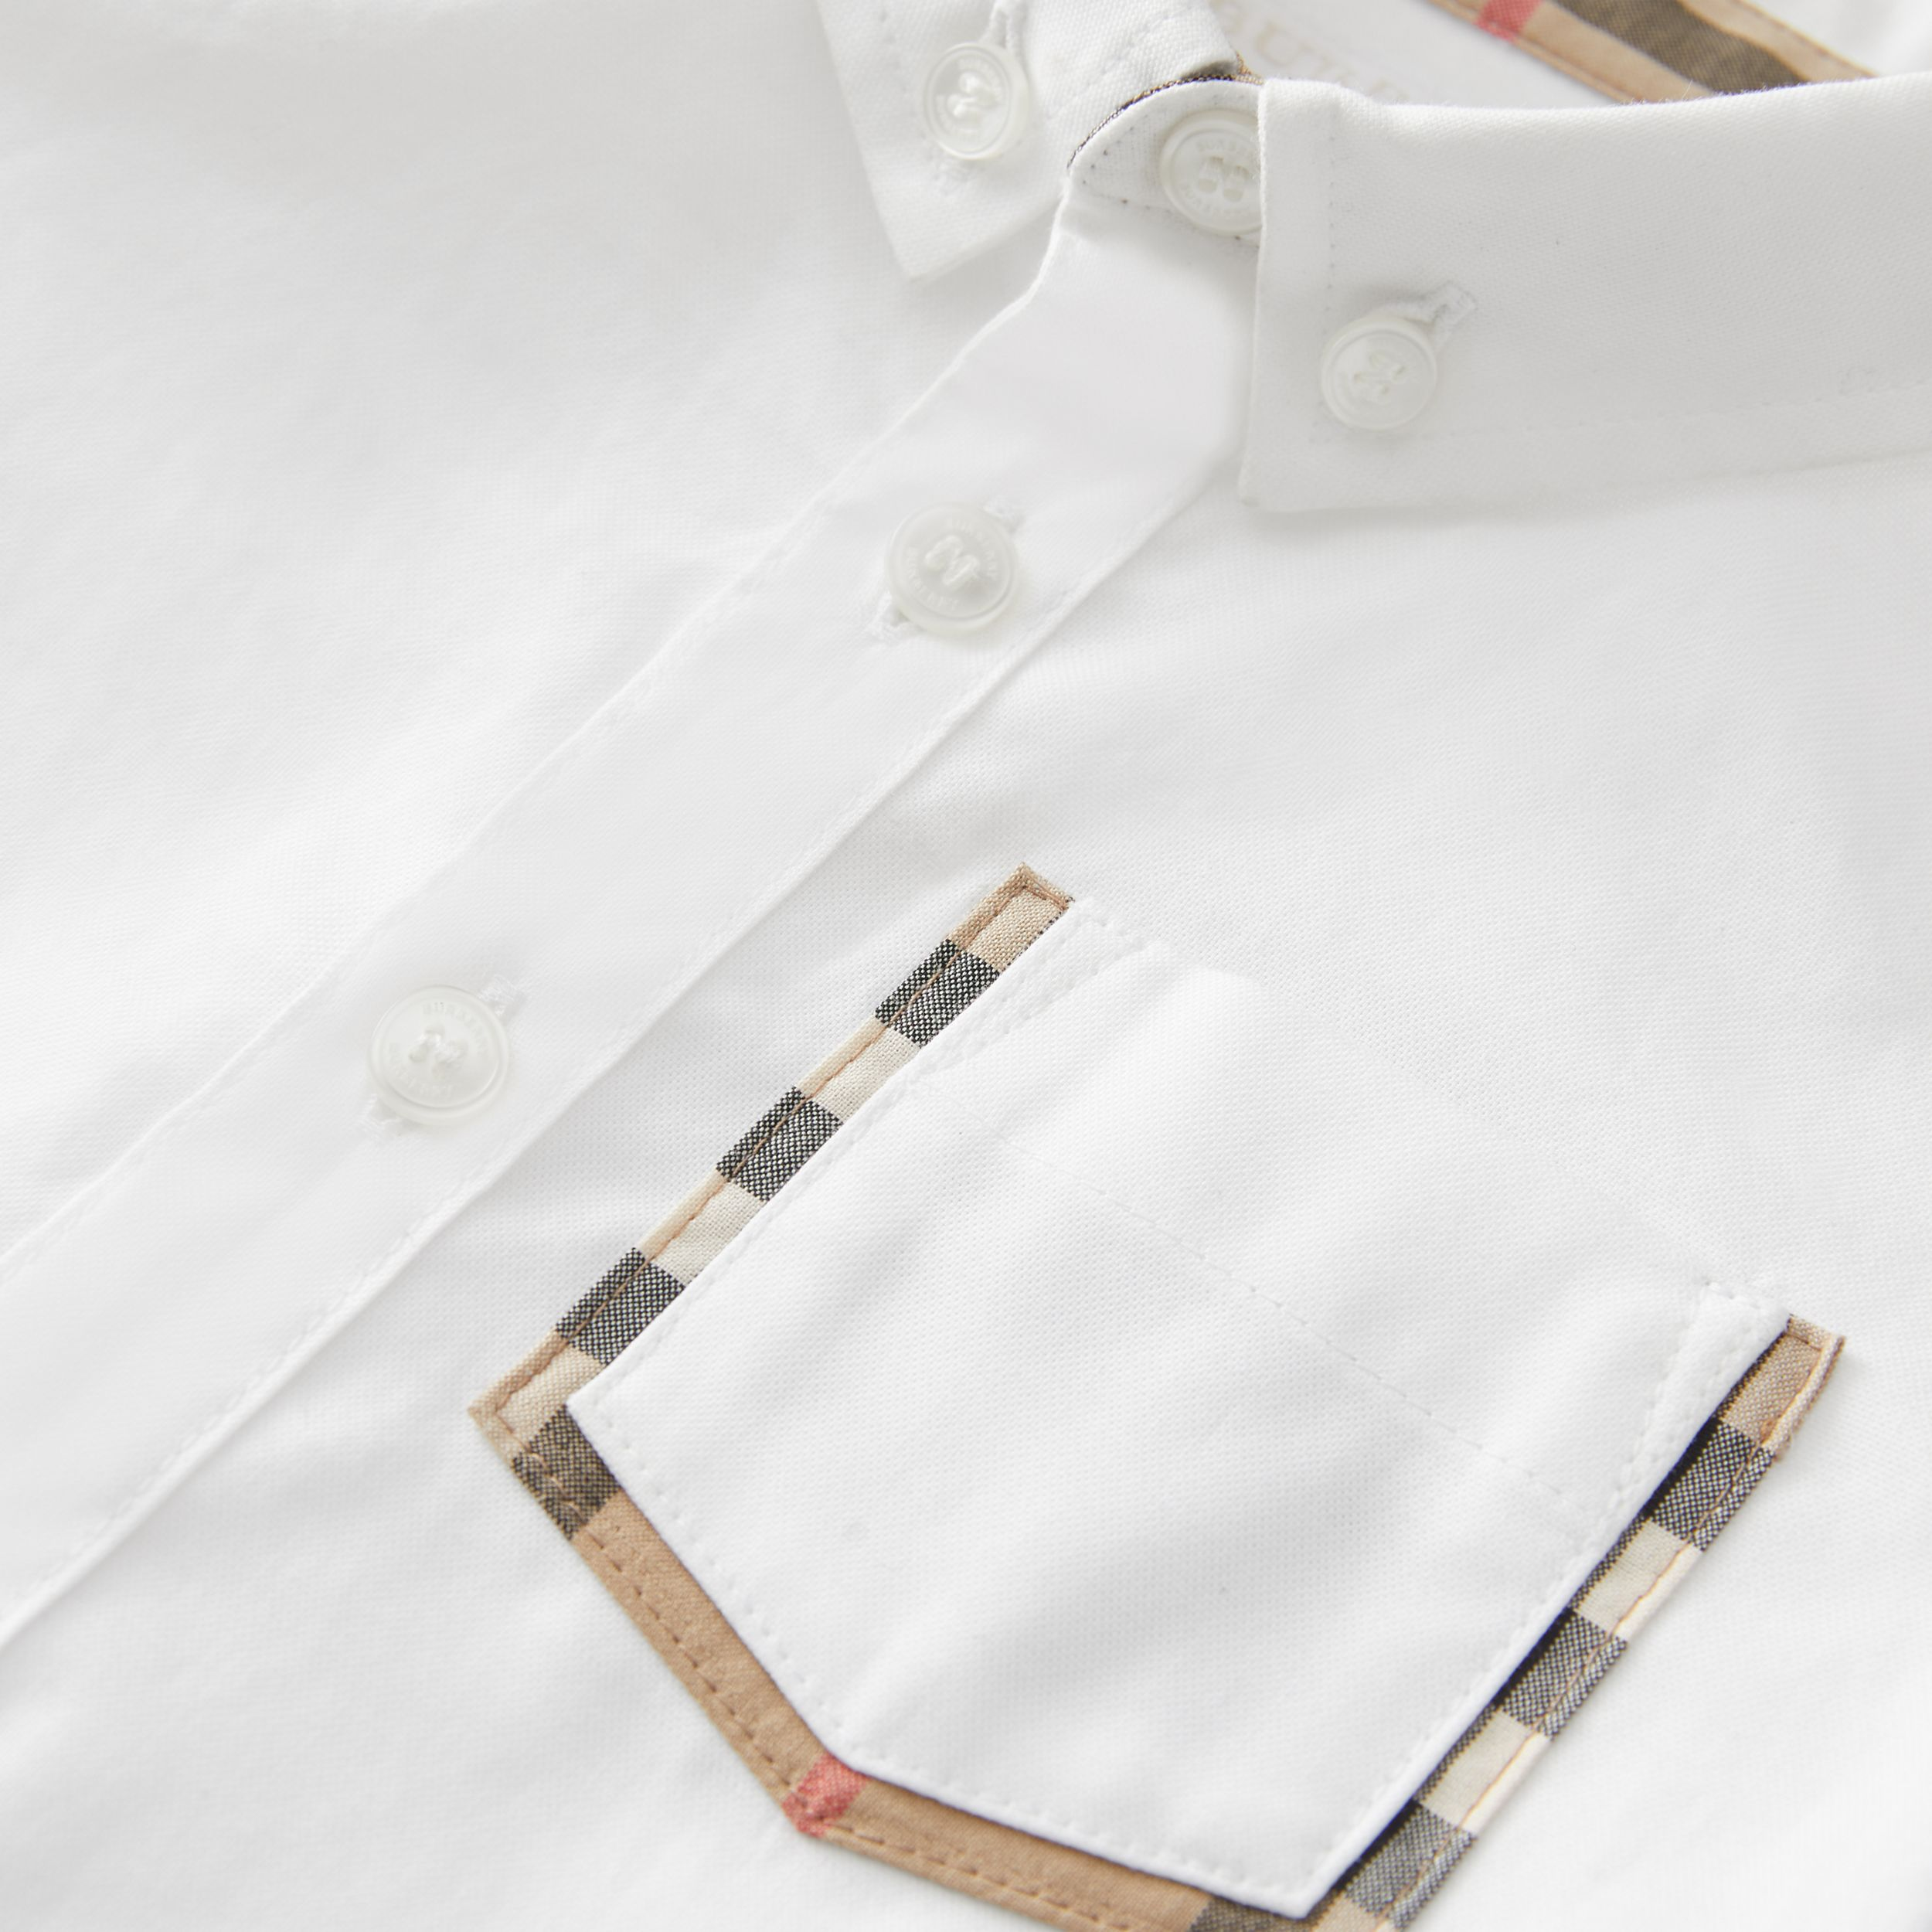 Vintage Check Detail Cotton Oxford Shirt in White - Children | Burberry - 2